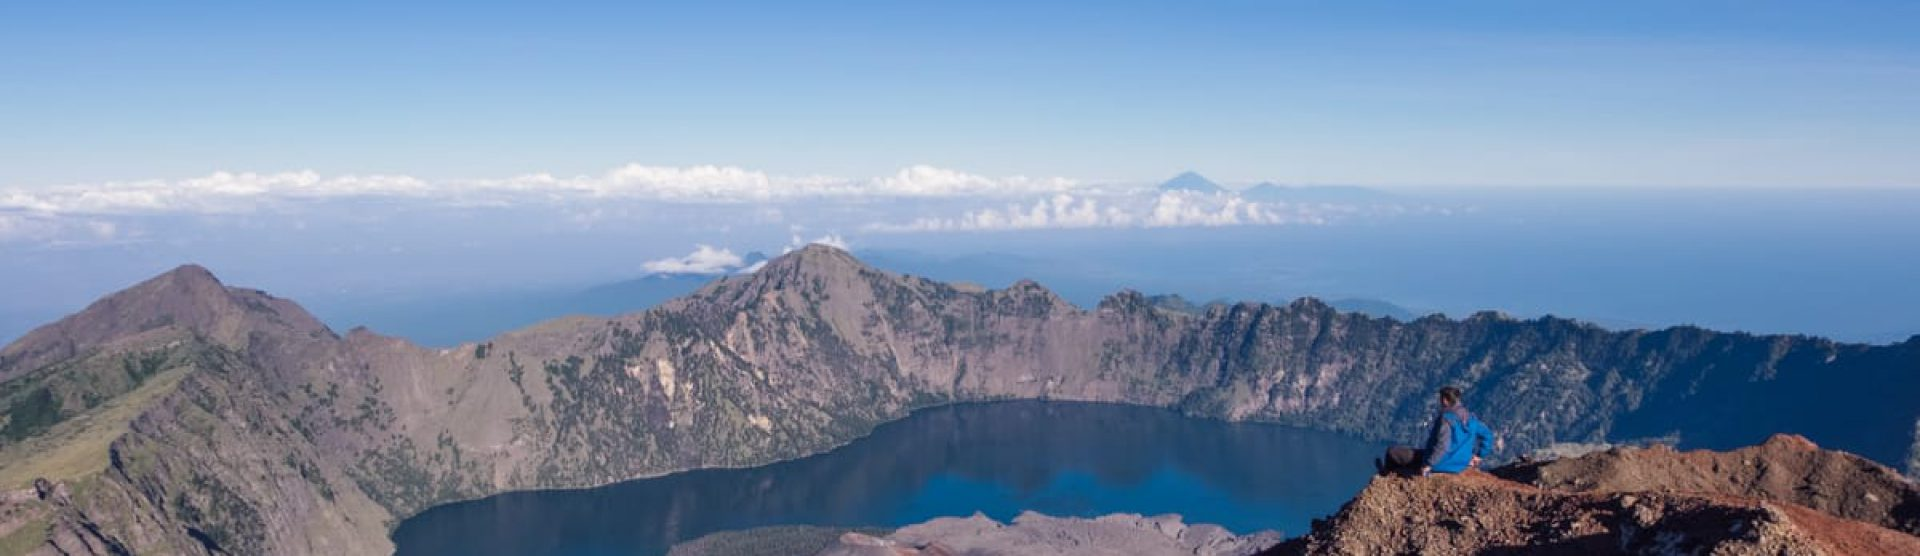 Rinjani Trekking by Mr. Adi